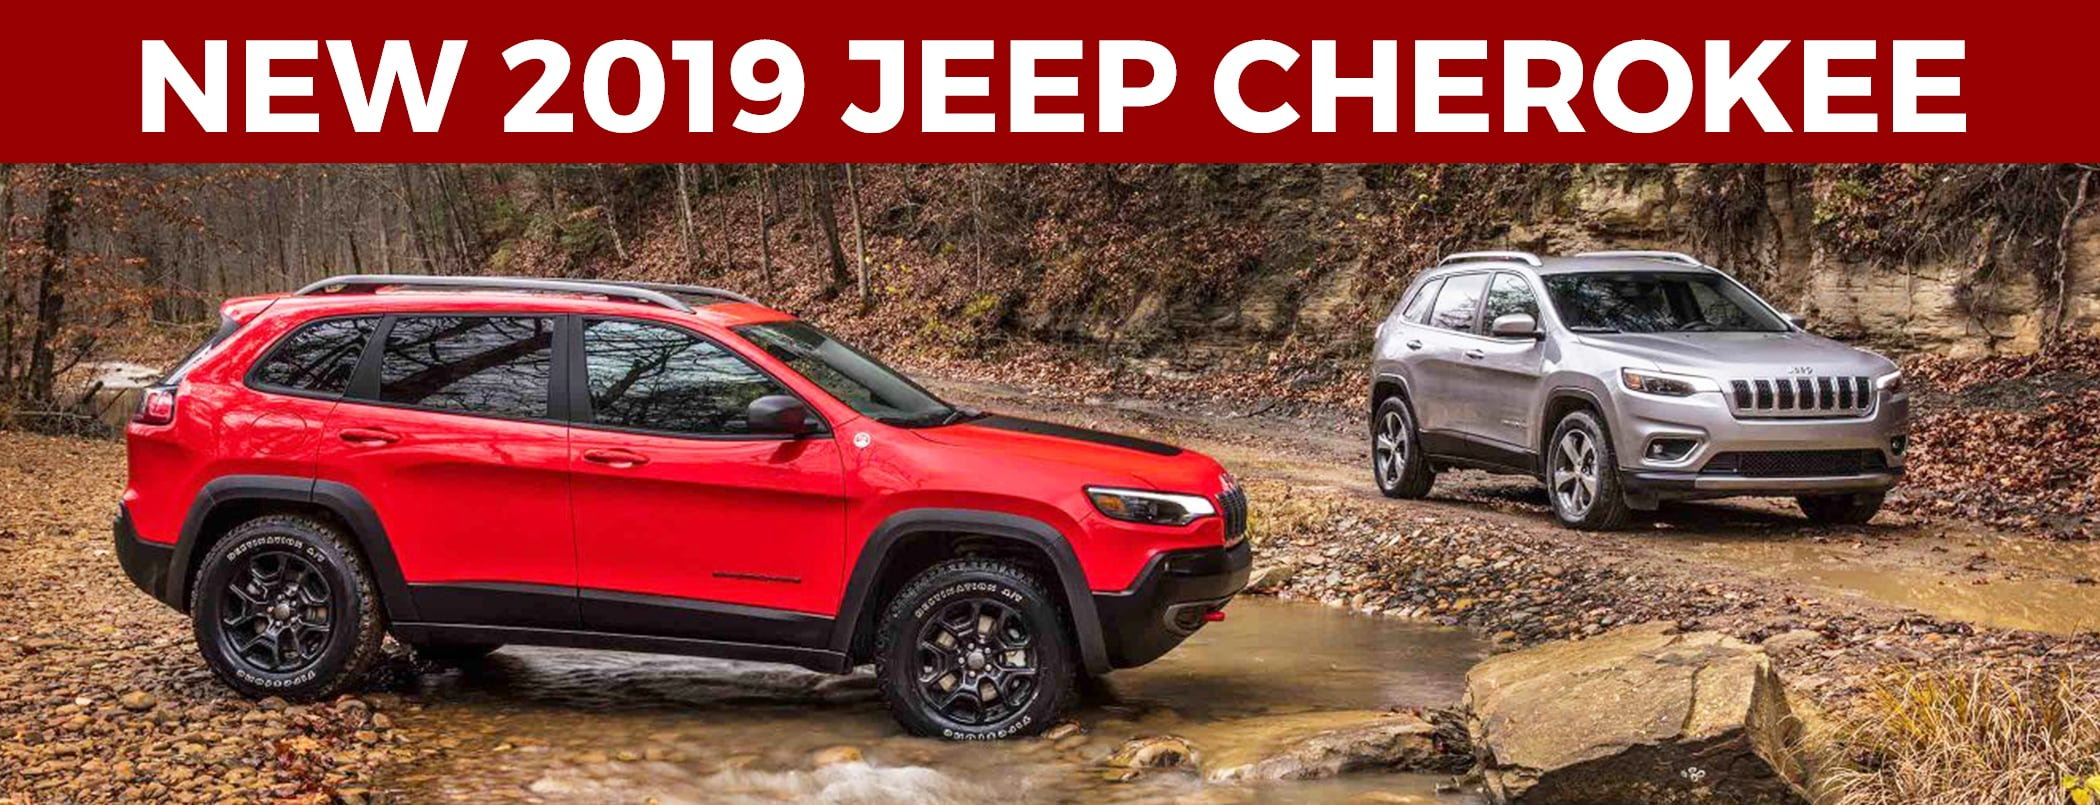 2019 Jeep Cherokee Review Sandy